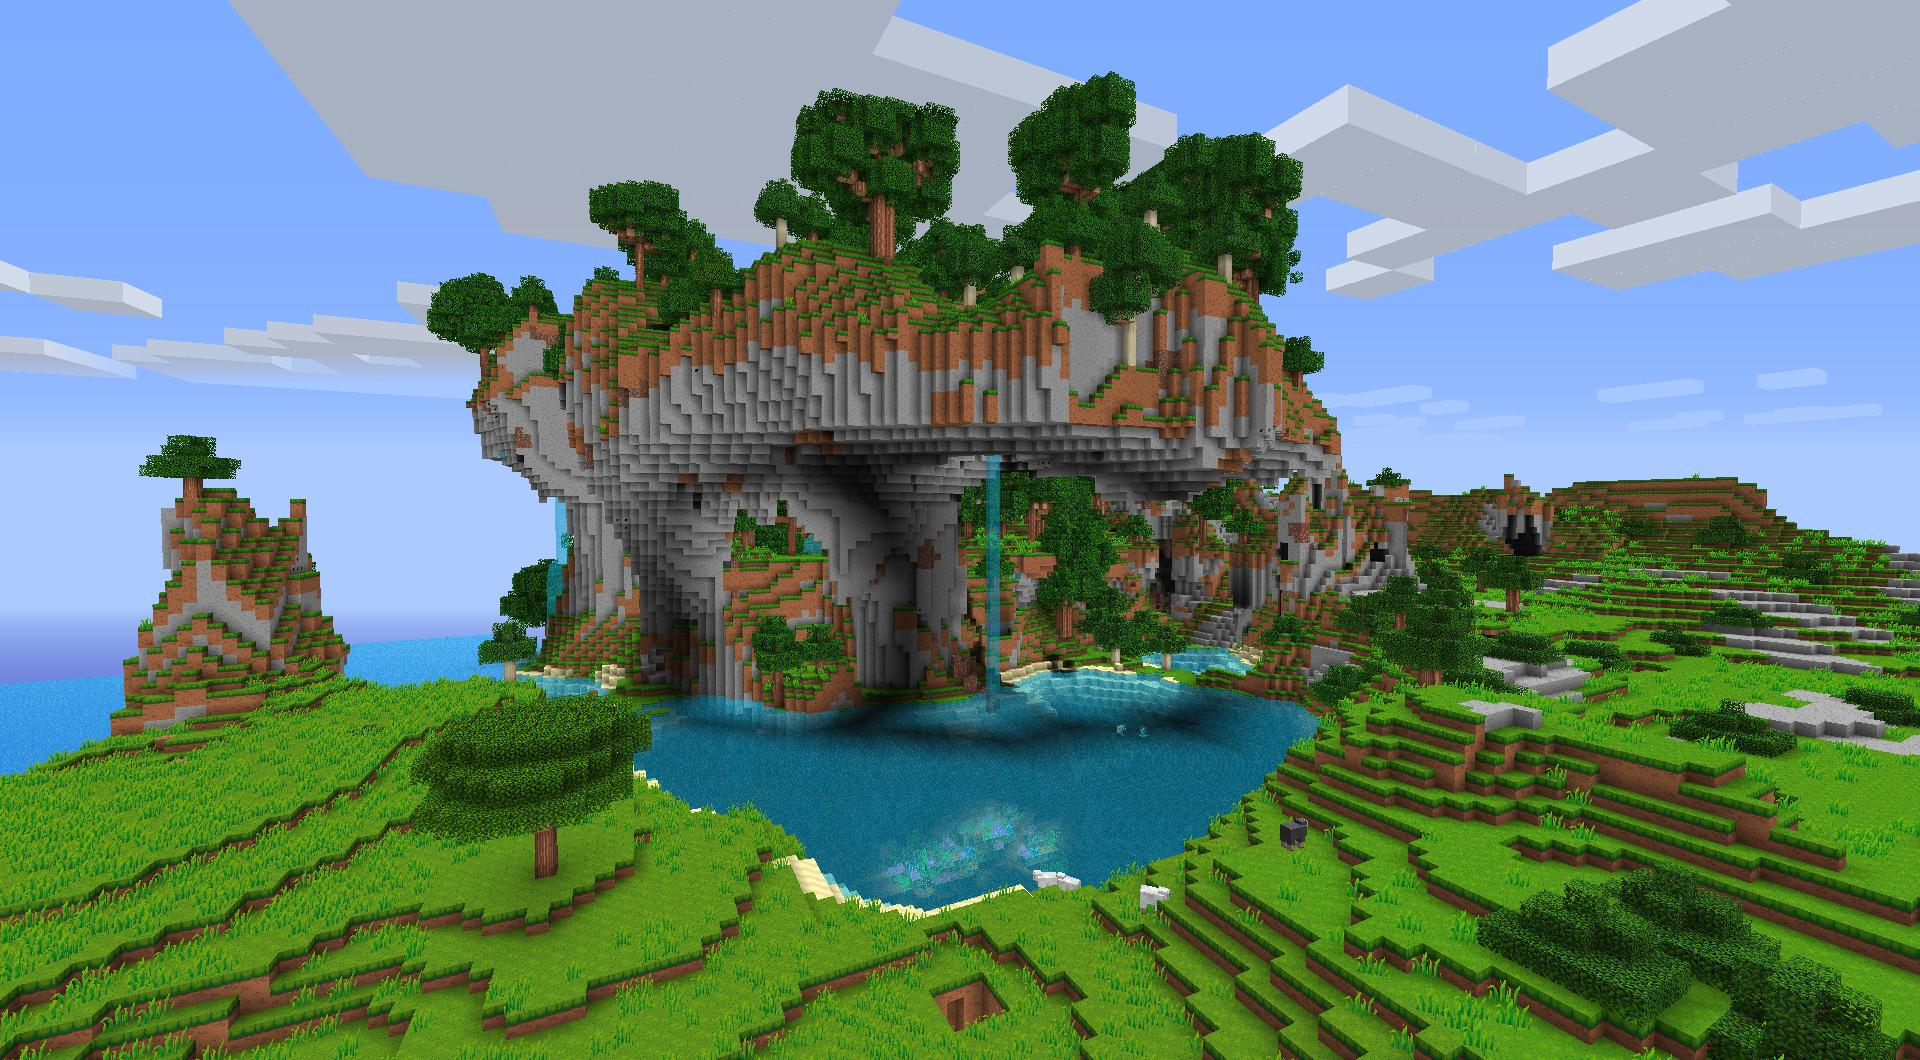 Top Wallpaper Minecraft Plain - minecraft-scenery-wallpaper-25  Collection_94241.jpg